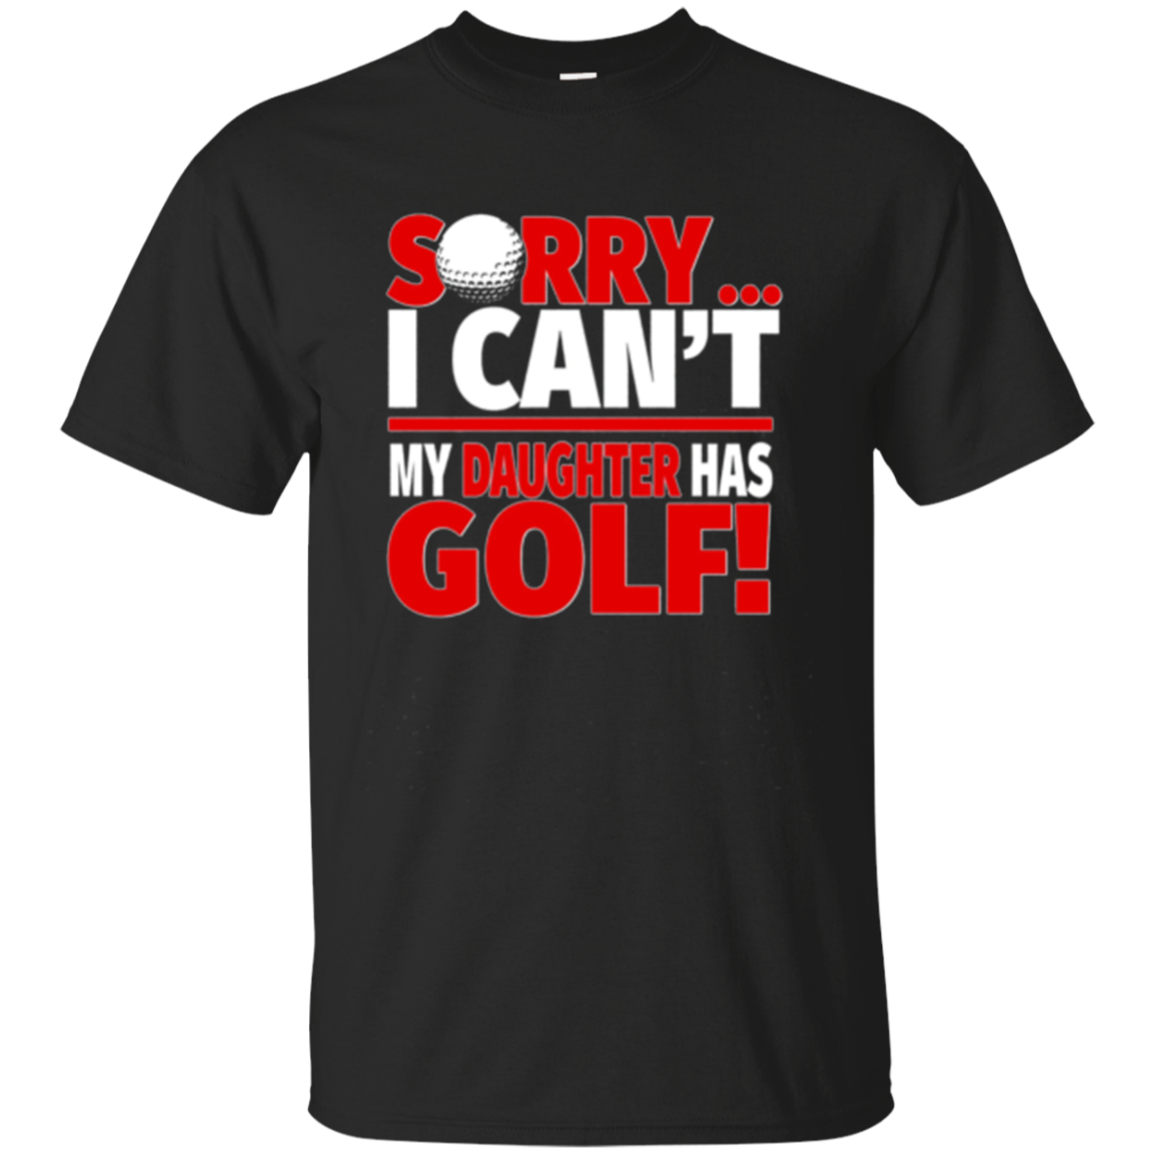 Golf Mom or Golf Dad Long Sleeve - Sorry I Can't Daughter